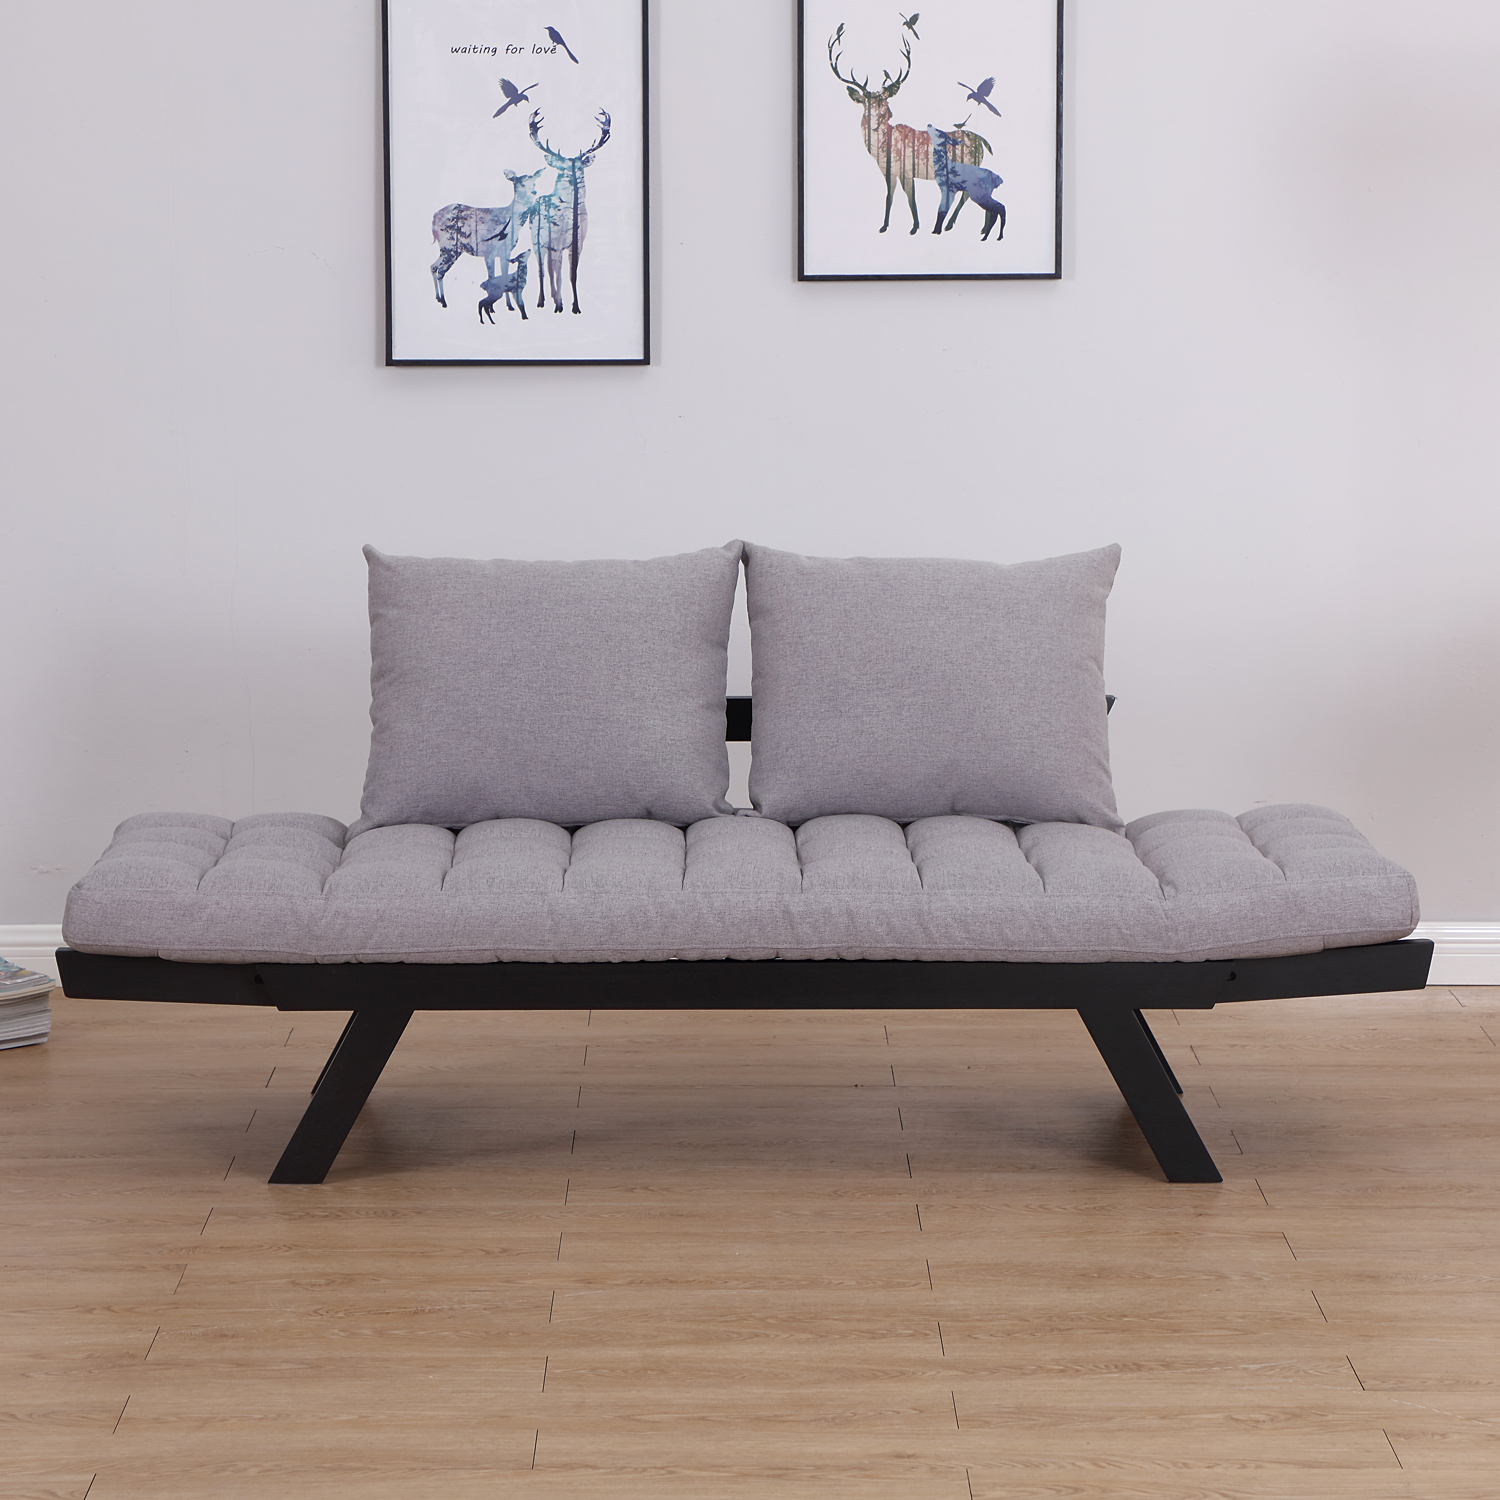 HomCom 3 Position Convertible Chaise Lounge Sofa Bed - Black / Light Grey